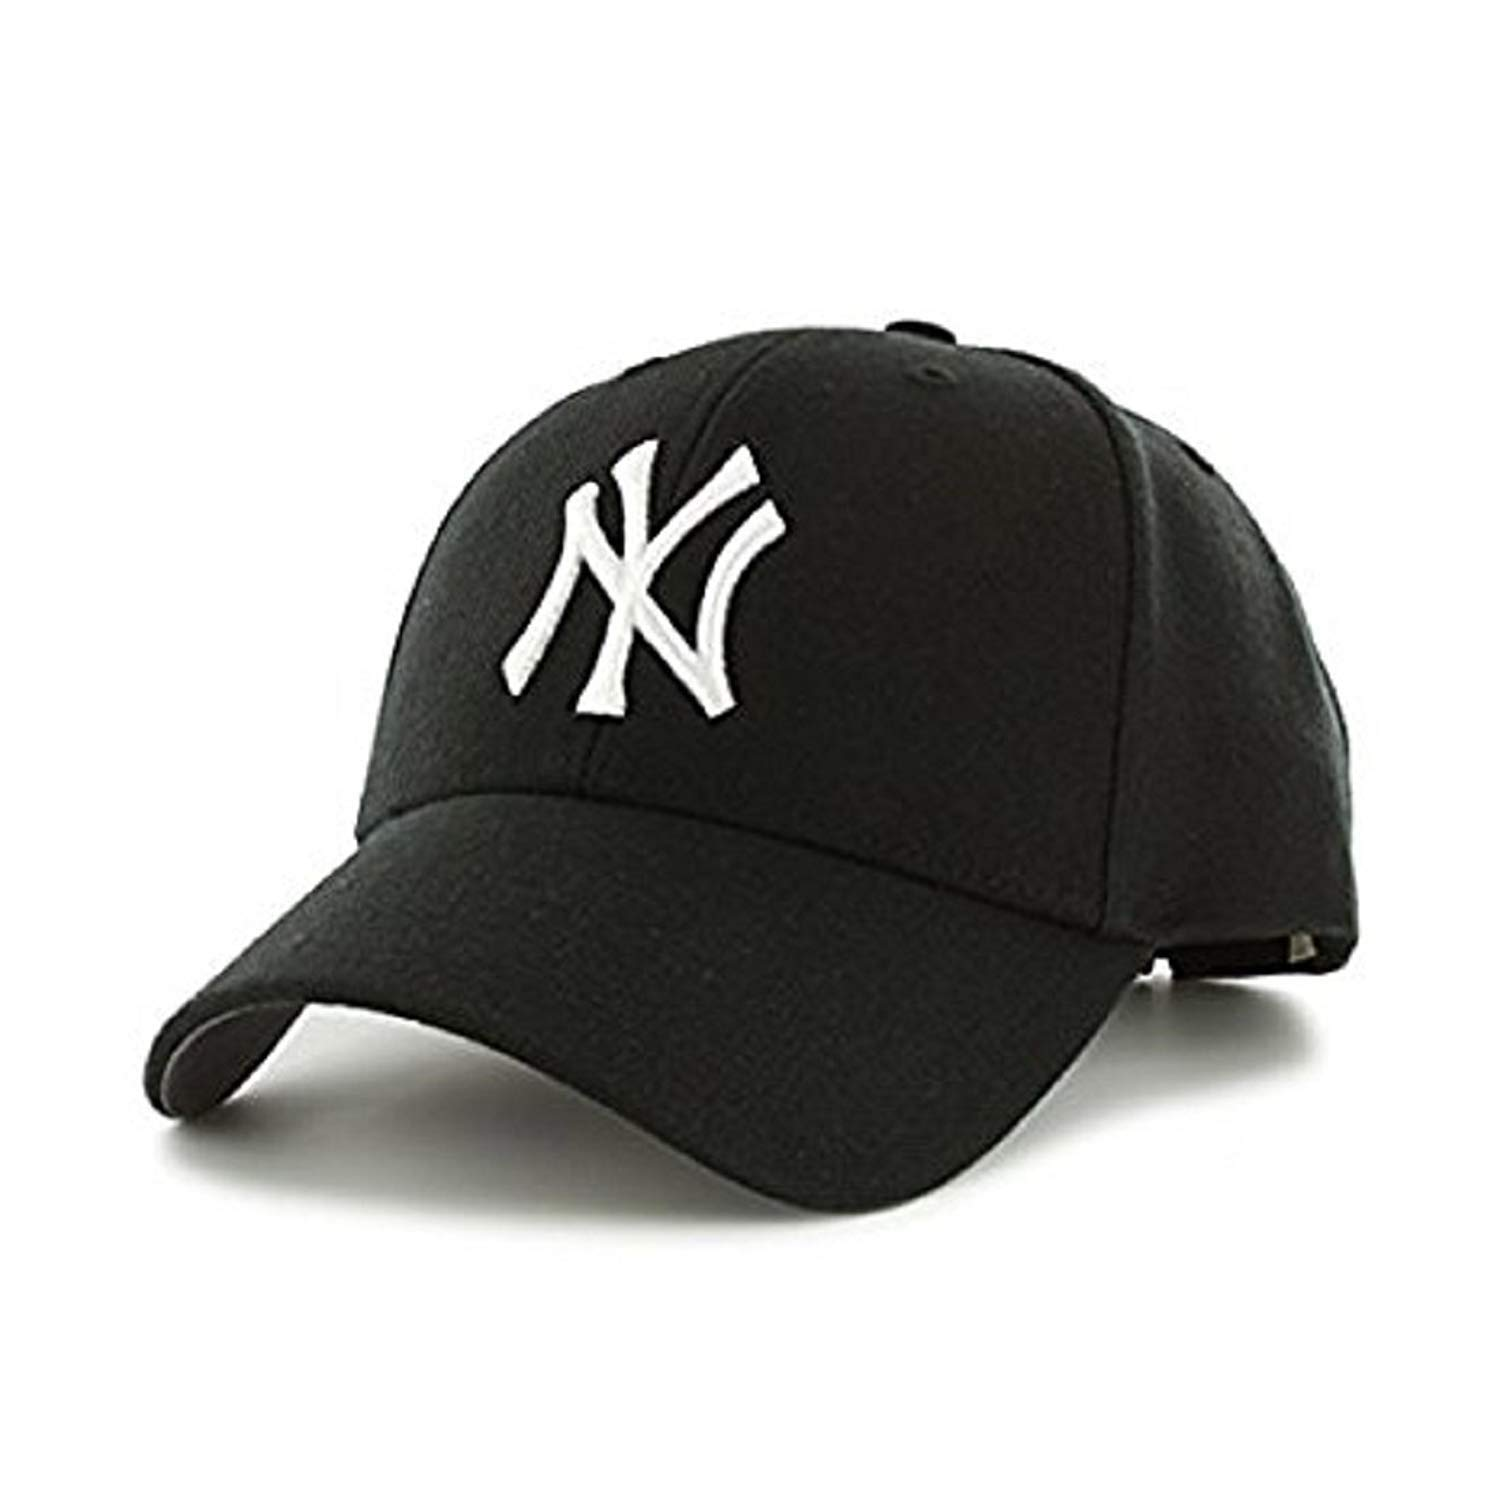 MoohMaya Premium NY Solid Round Caps for Men   Women for Sports    Outdoor(Black)  Amazon.in  Clothing   Accessories dd5e9771f7f